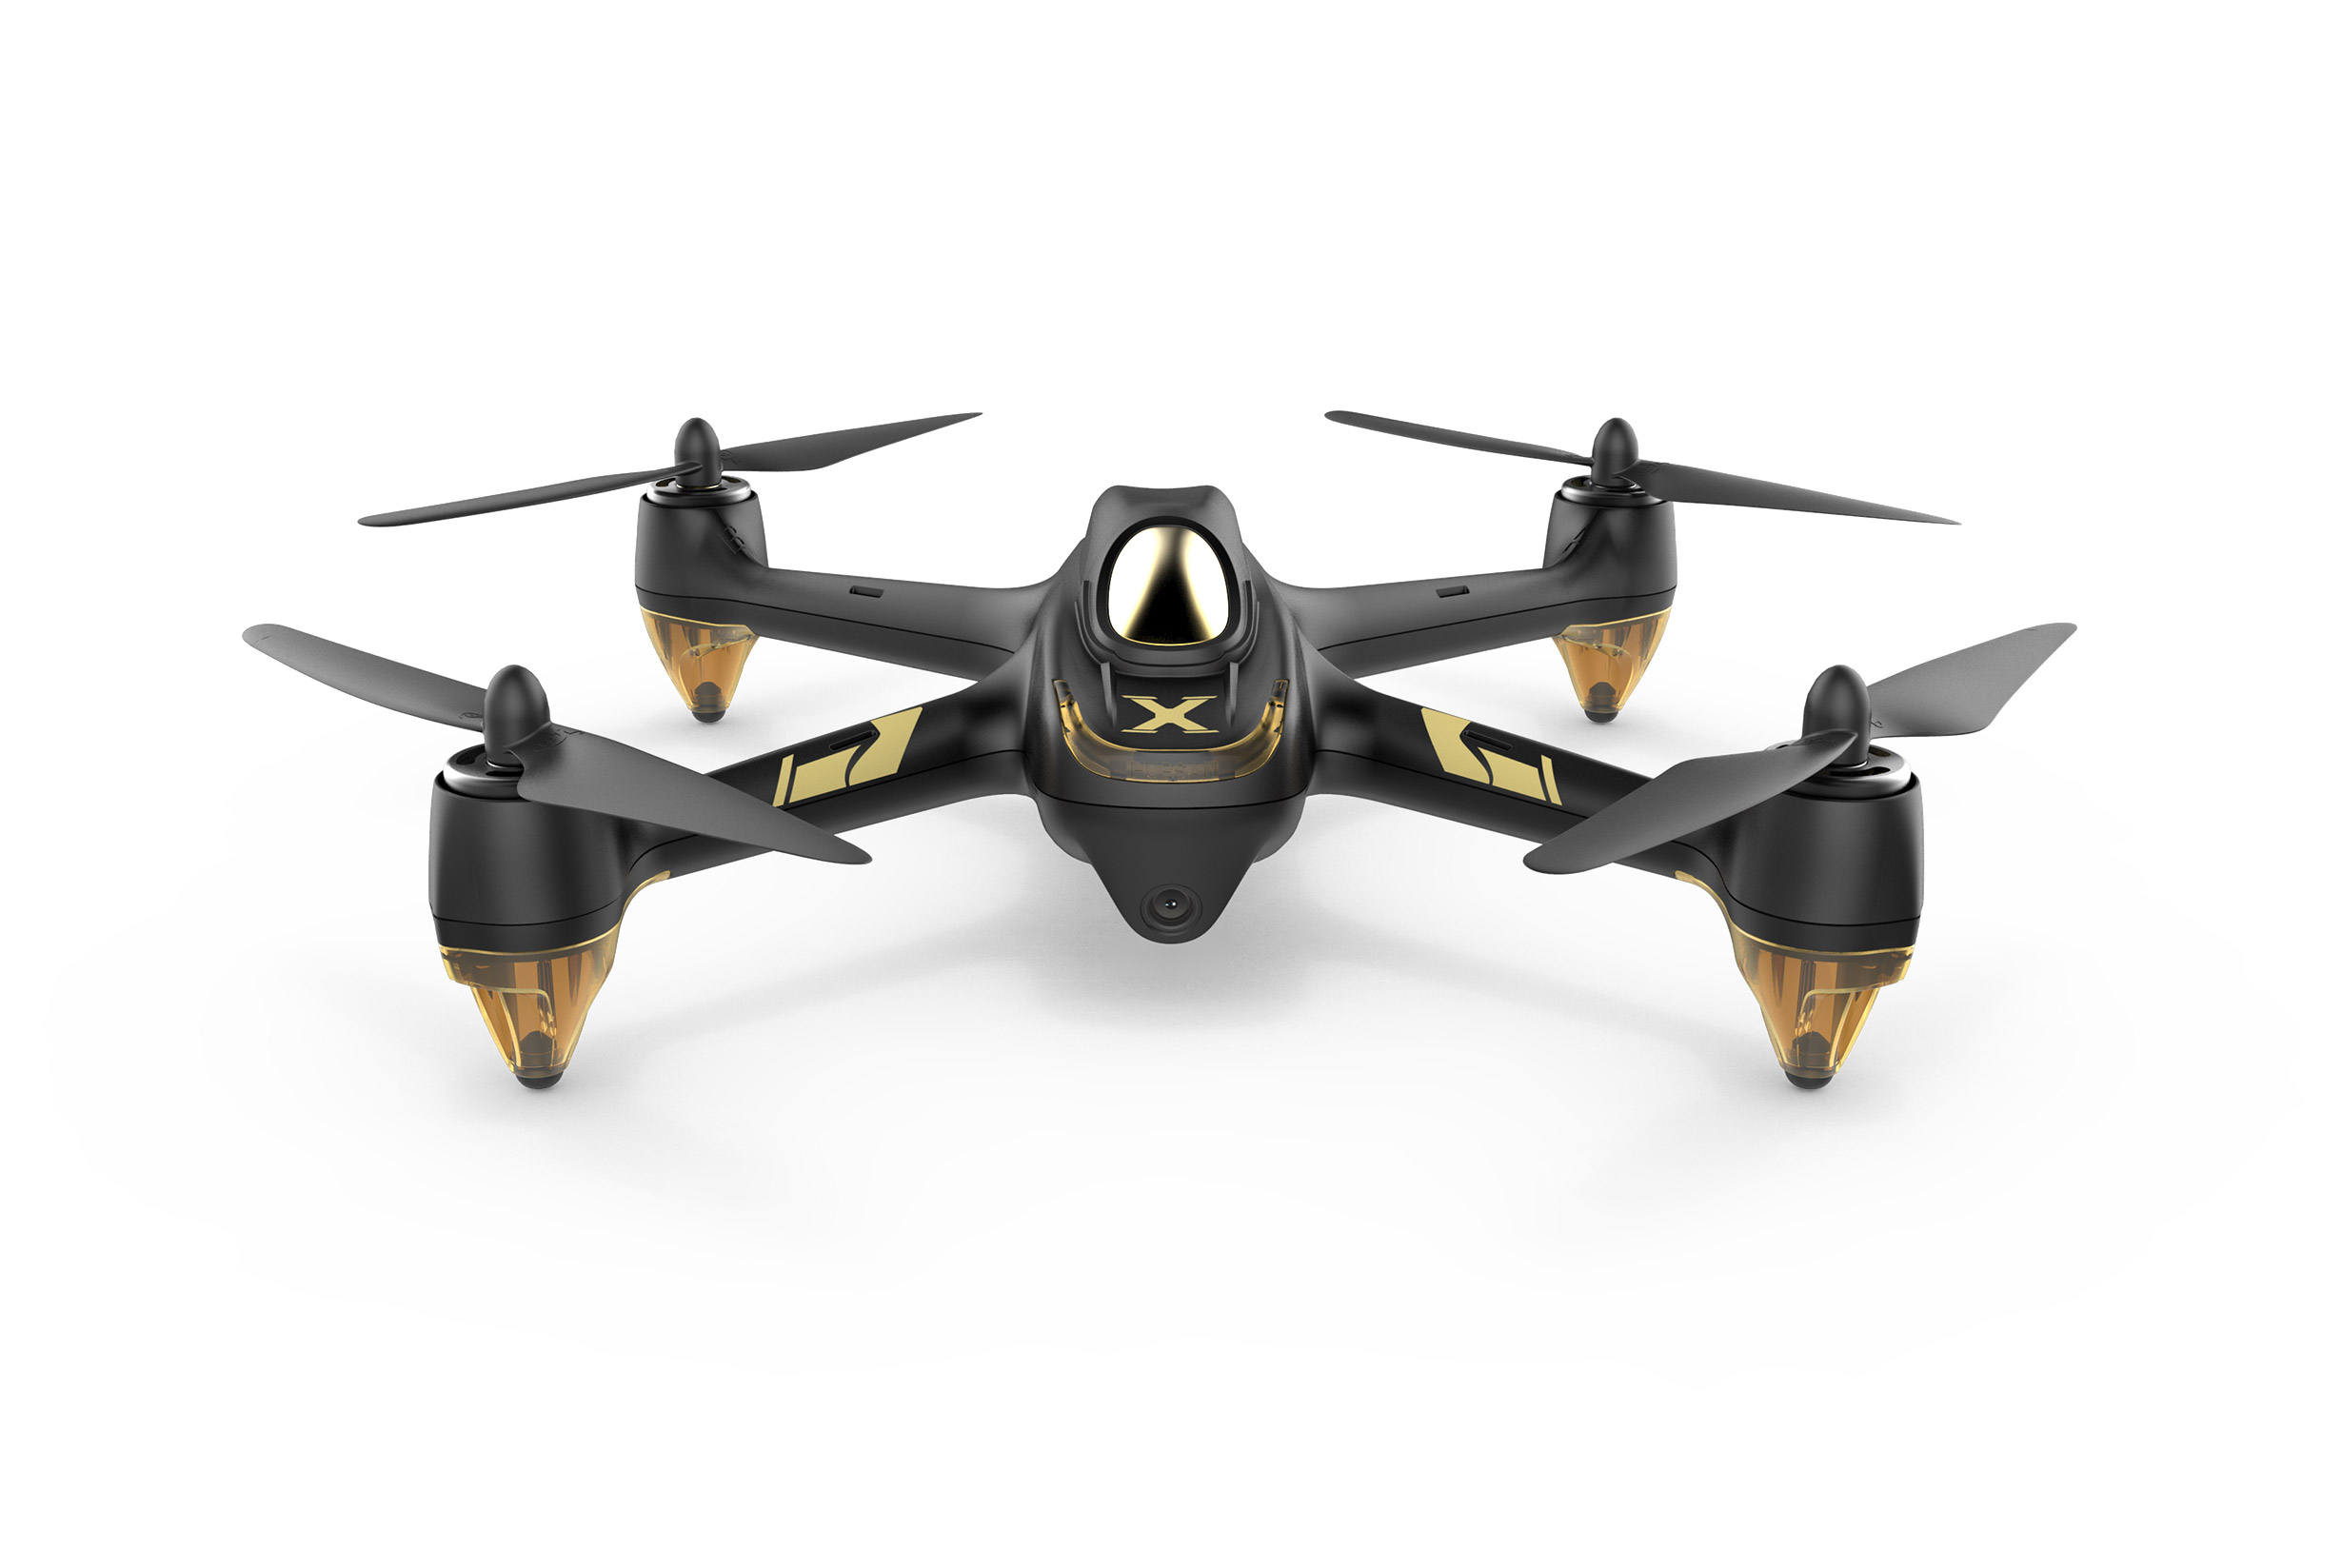 Hubsan H501A X4 WIFI Brushless FPV RC Quadcopter Drone with 1080P HD